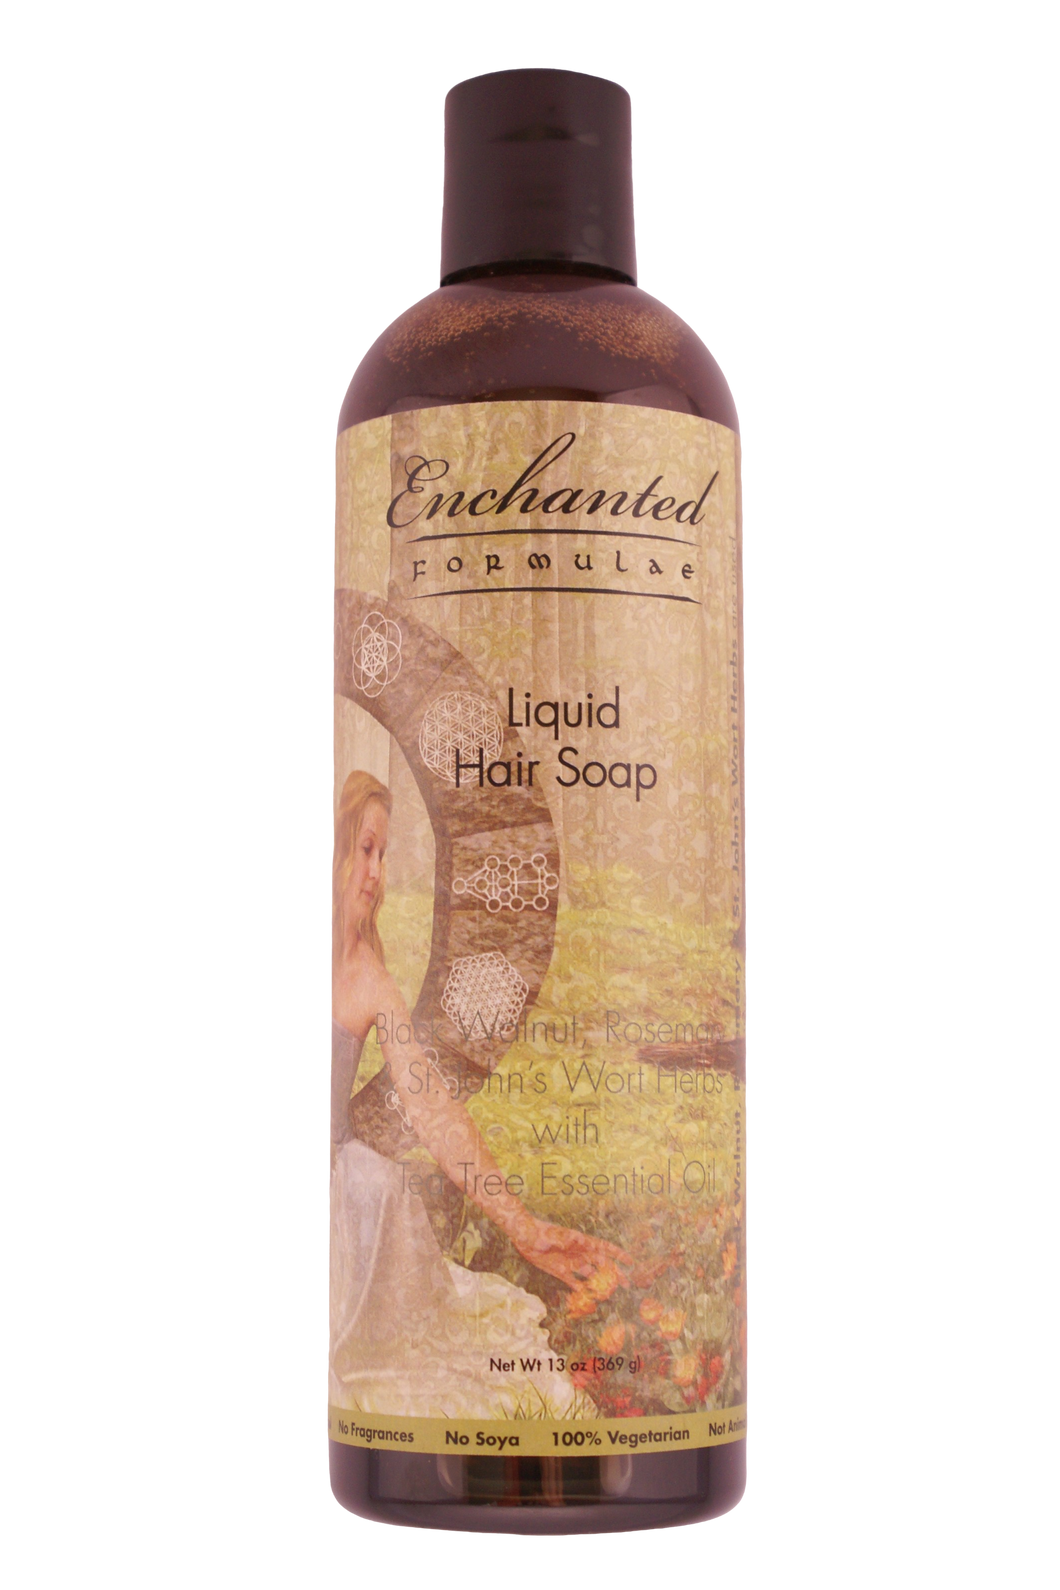 HAIR LIQUID SOAP with Herbs & Essential Oils